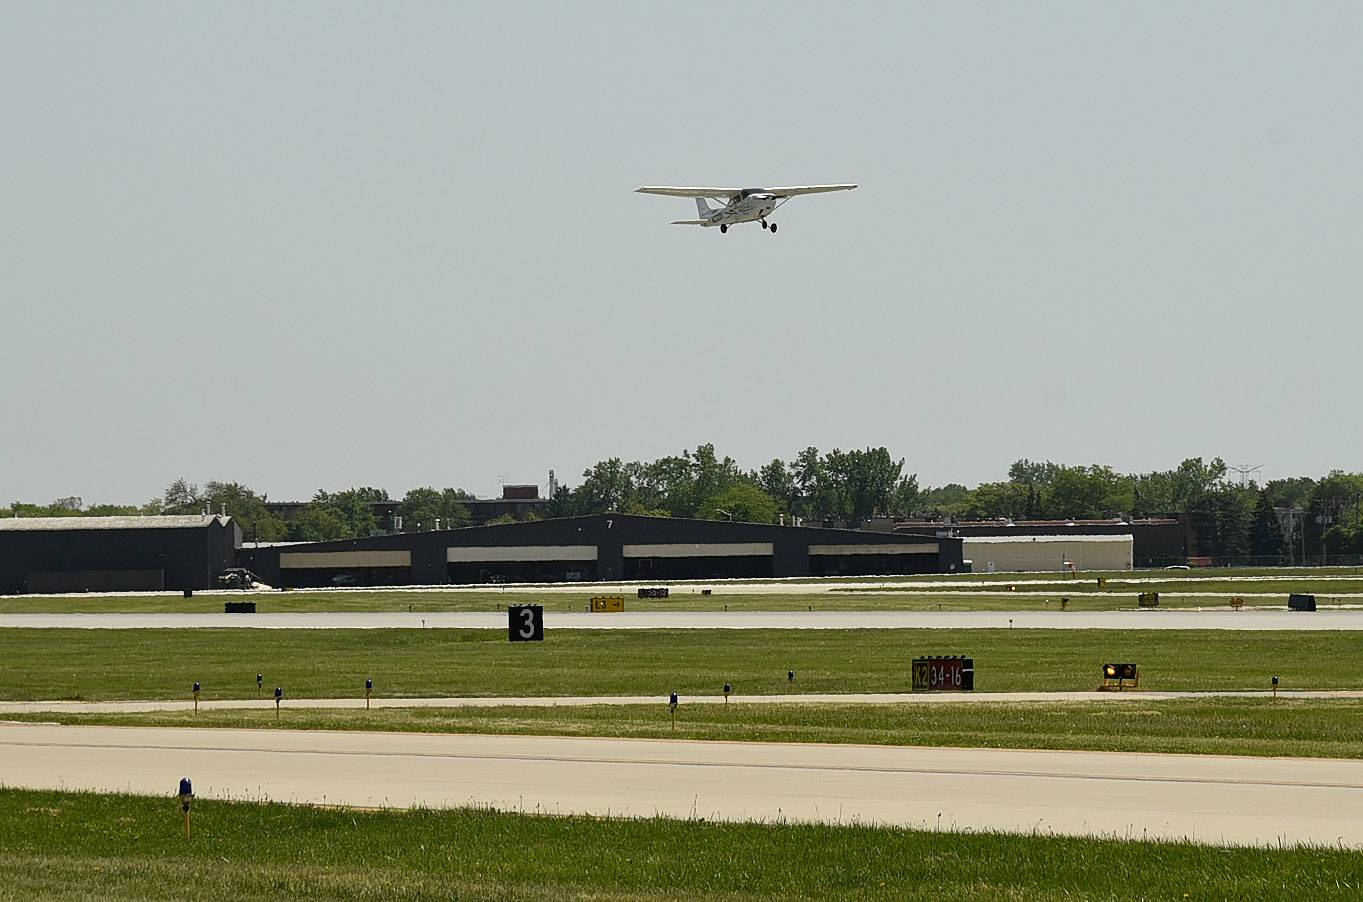 A small aircraft takes off from Chicago Executive Airport, which is conducting a public safety campaign about drones.